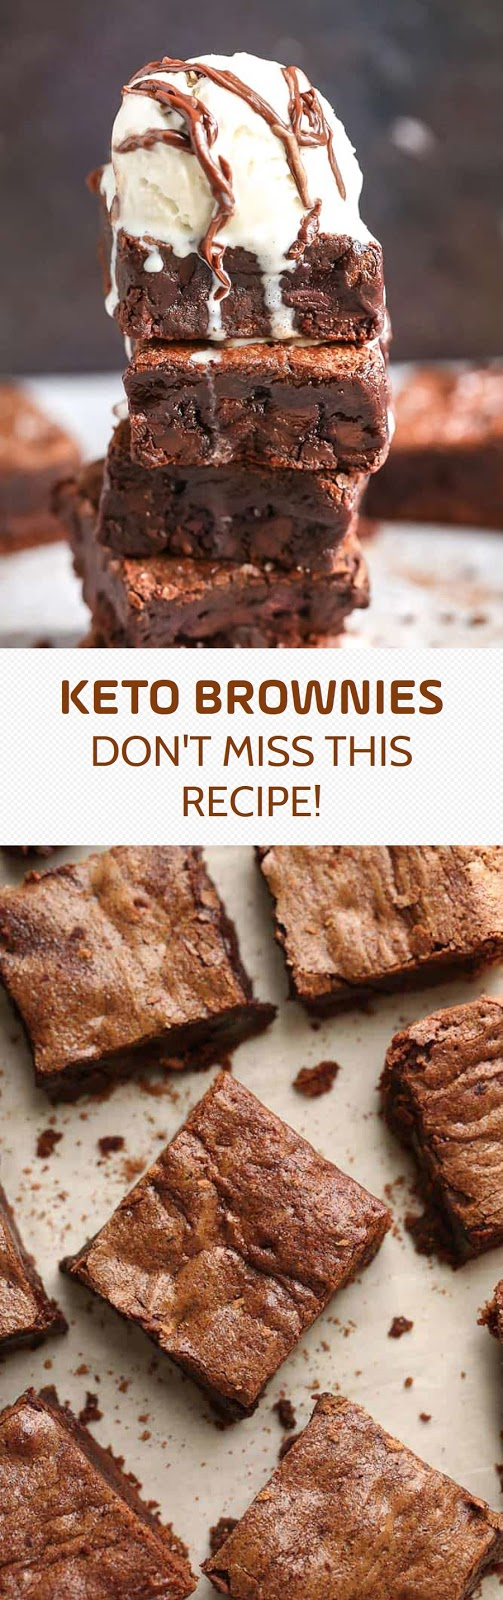 KETO BROWNIES - DON'T MISS THIS RECIPE